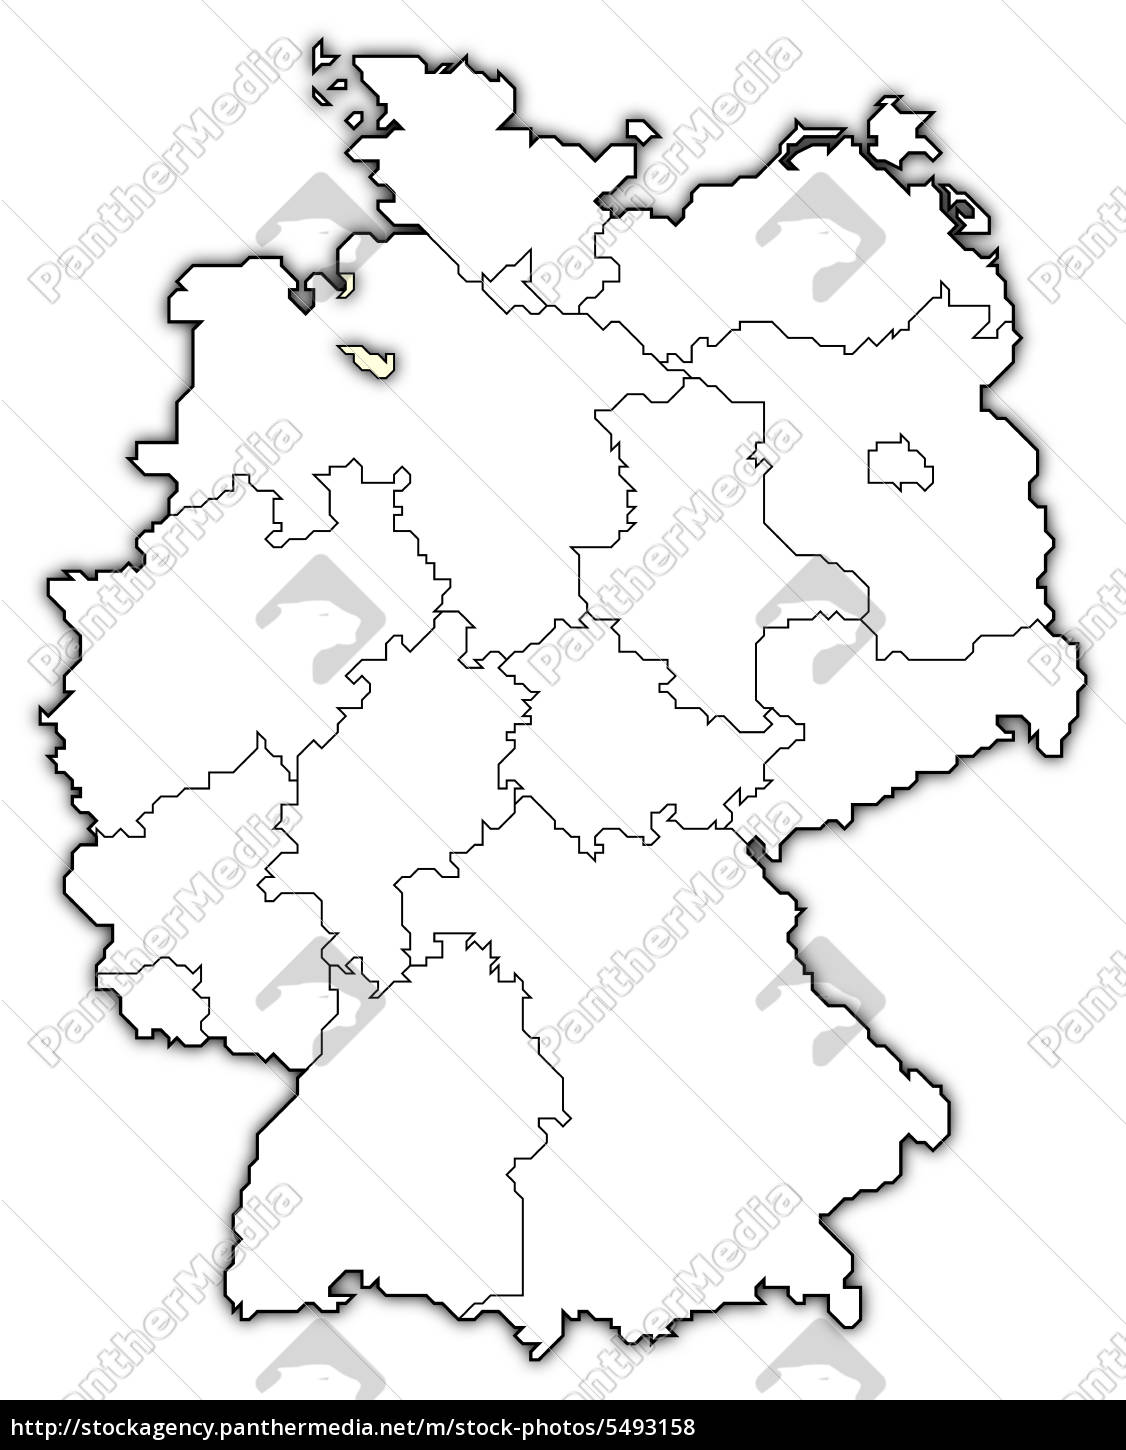 Stock Bild 5493158 - Map of Germany Bremen highlighted